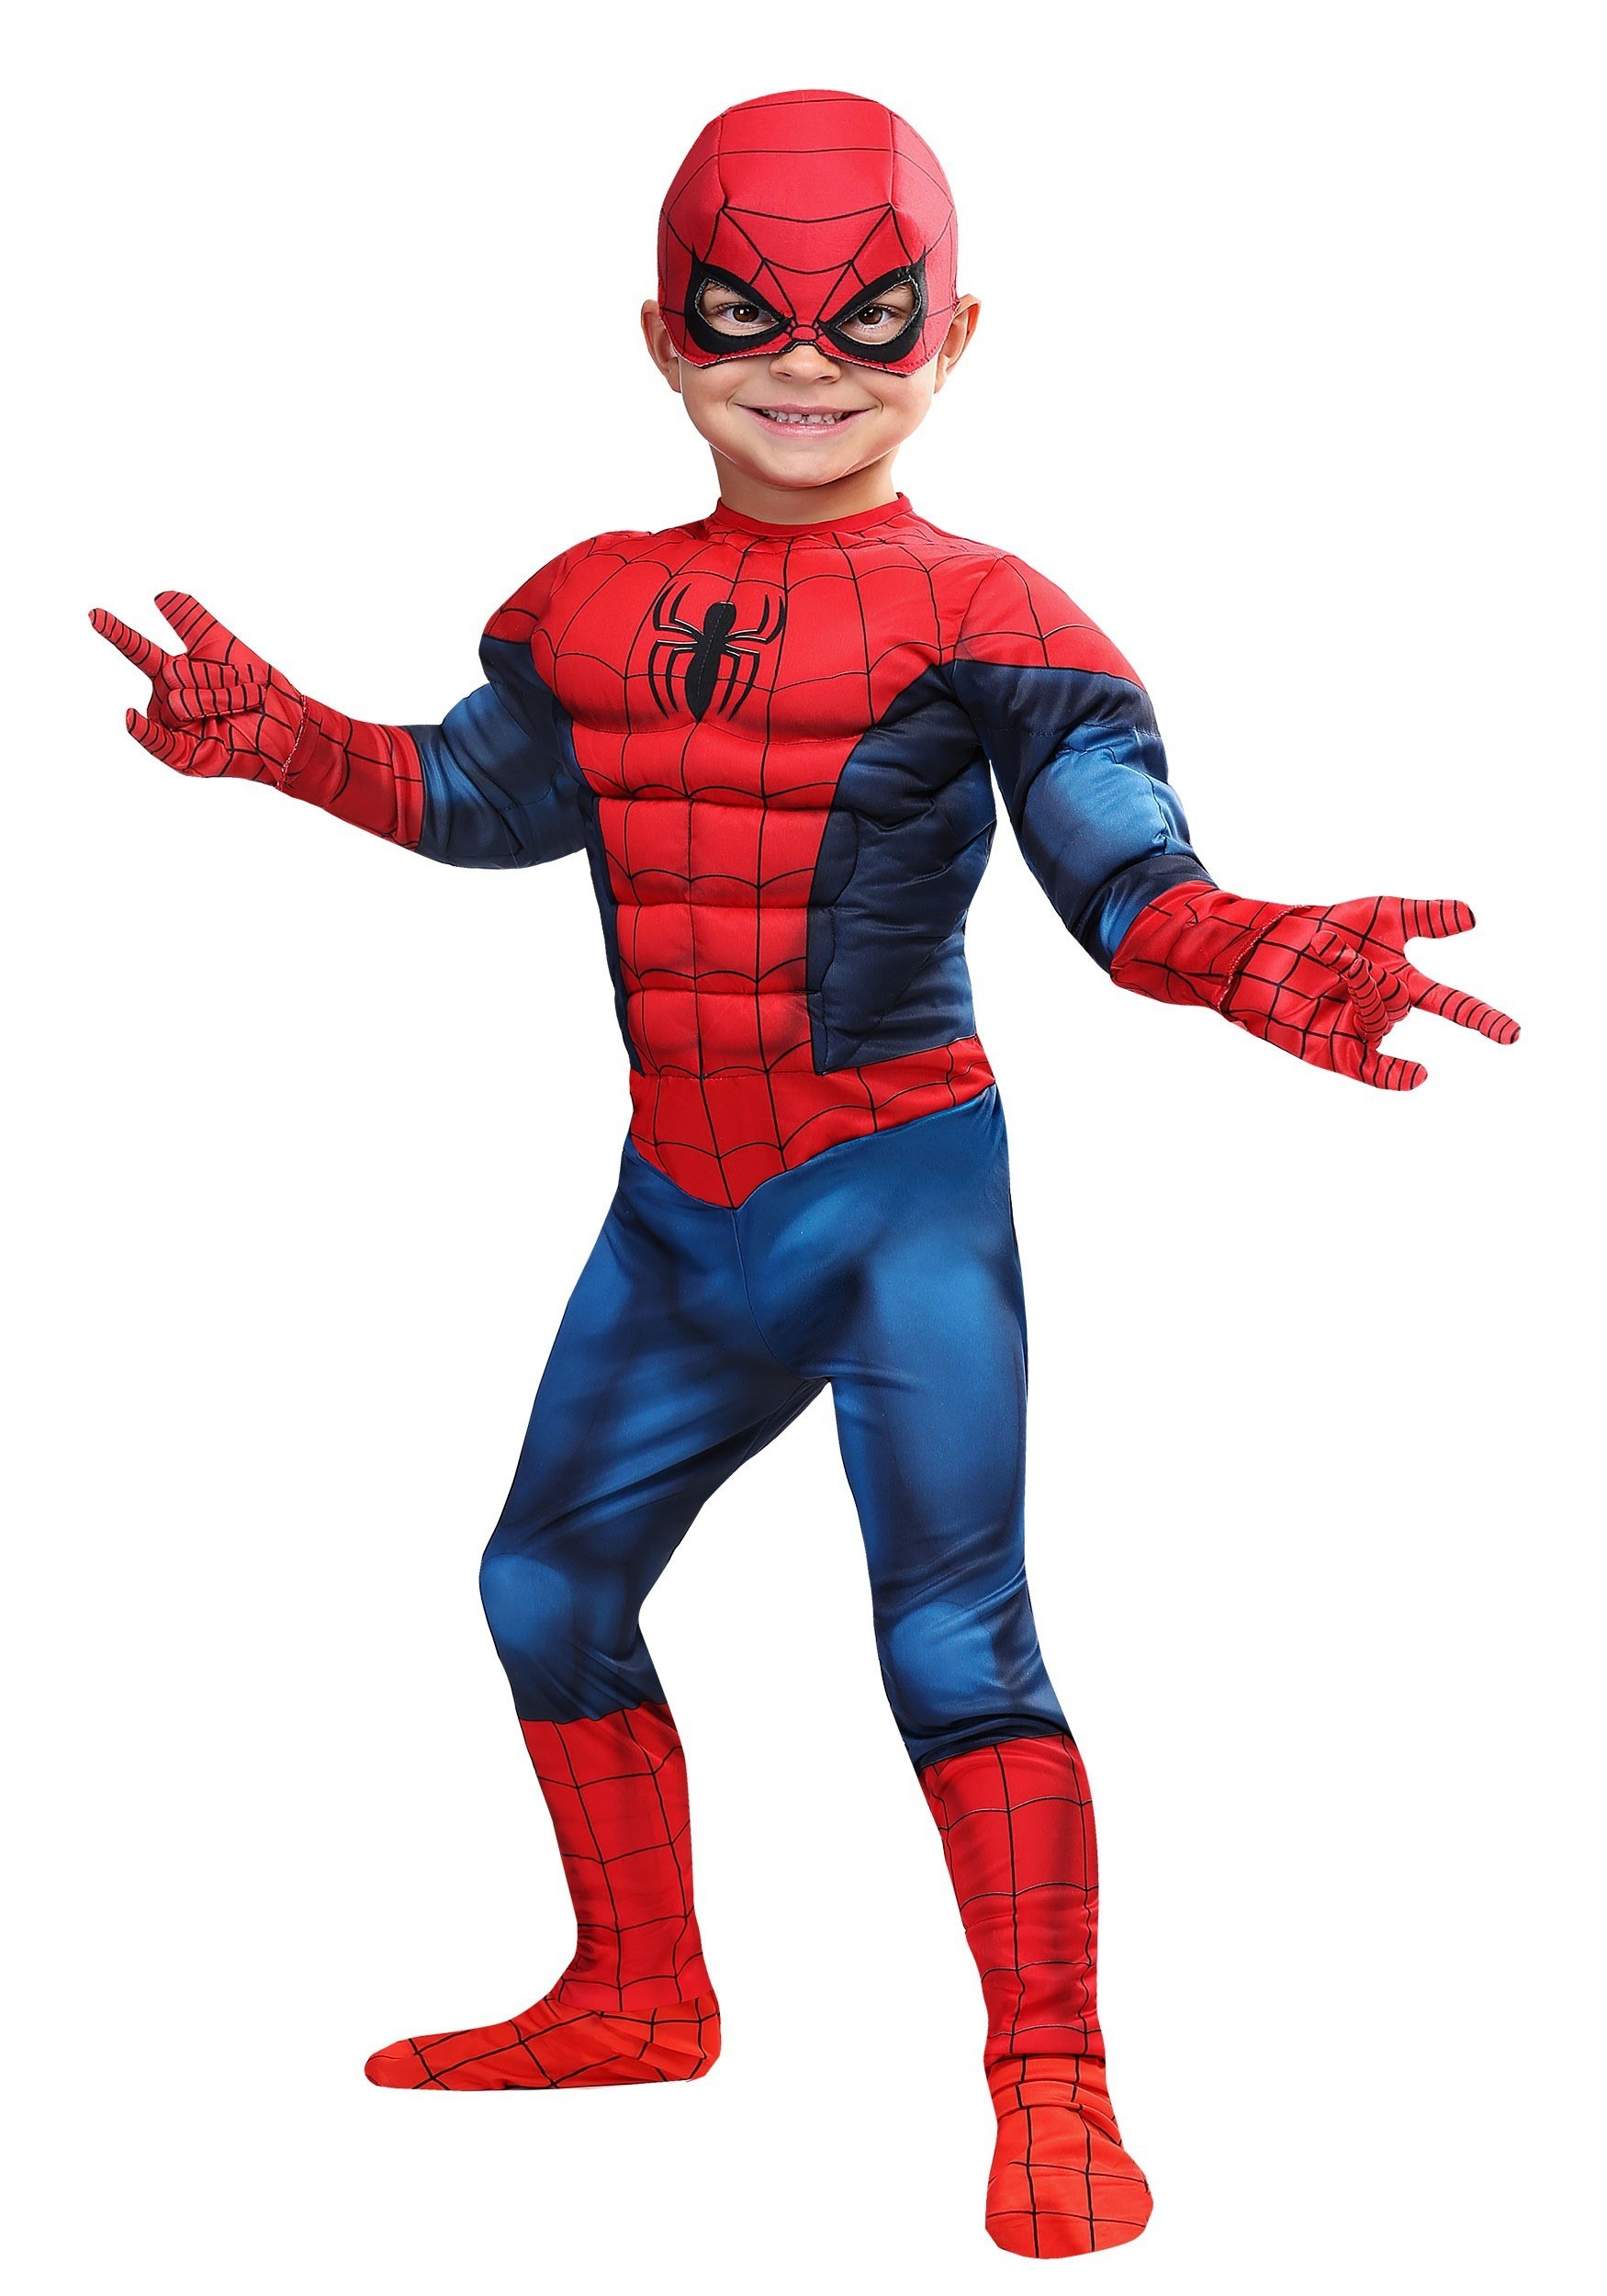 Marvel Spider-Man Toddler Costume RU640696